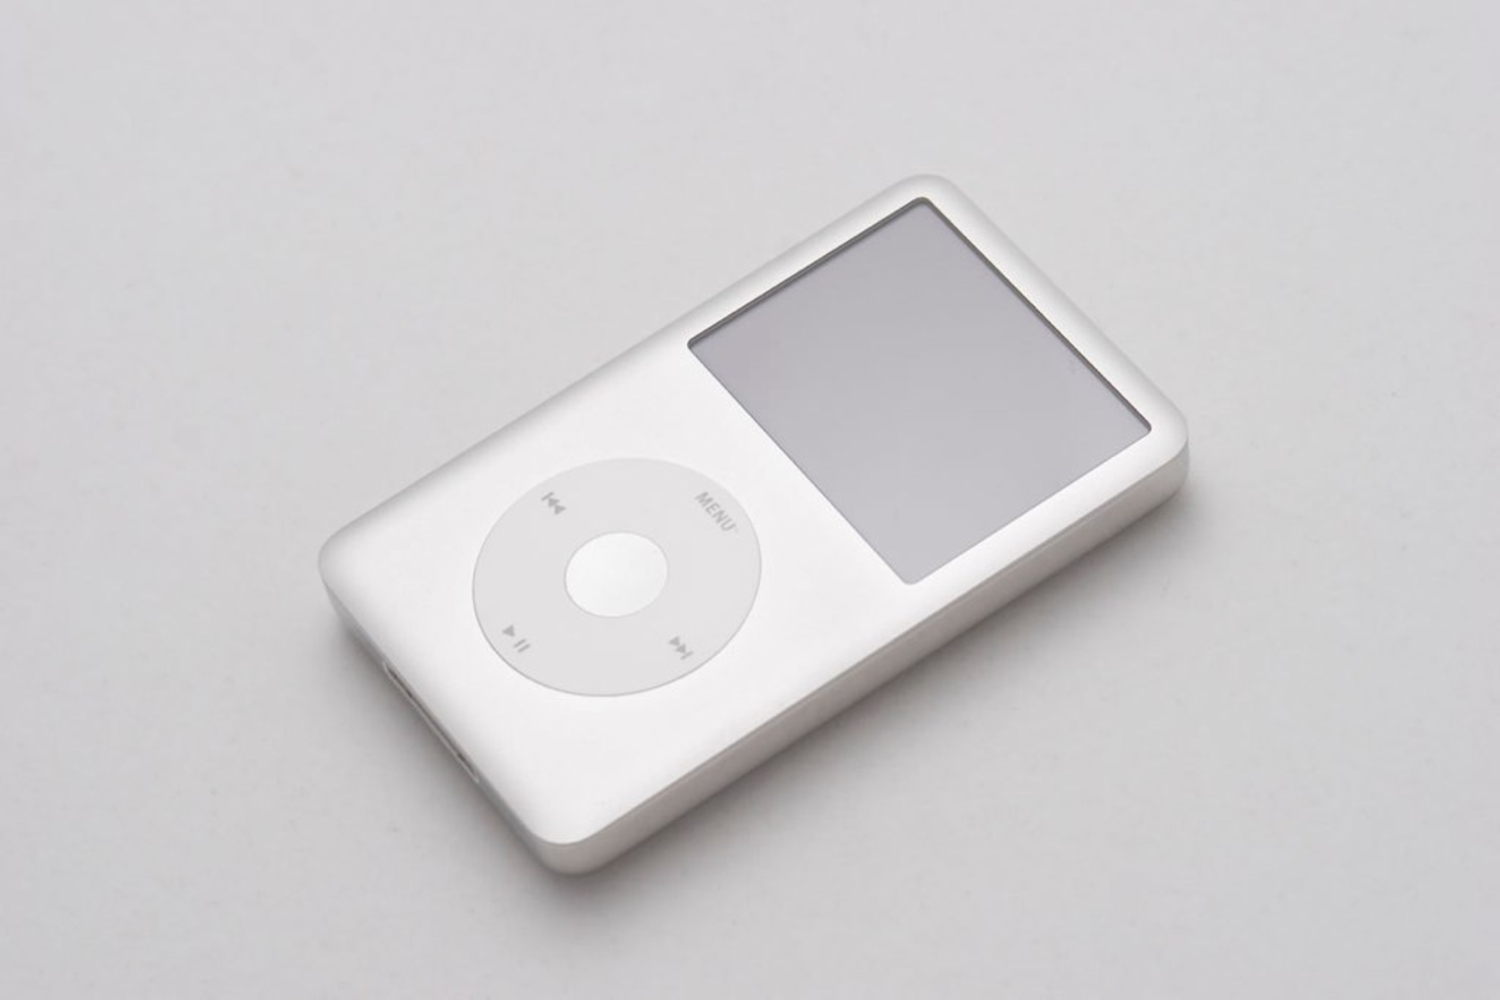 Wait a Second....Apple Killed Off The iPod?